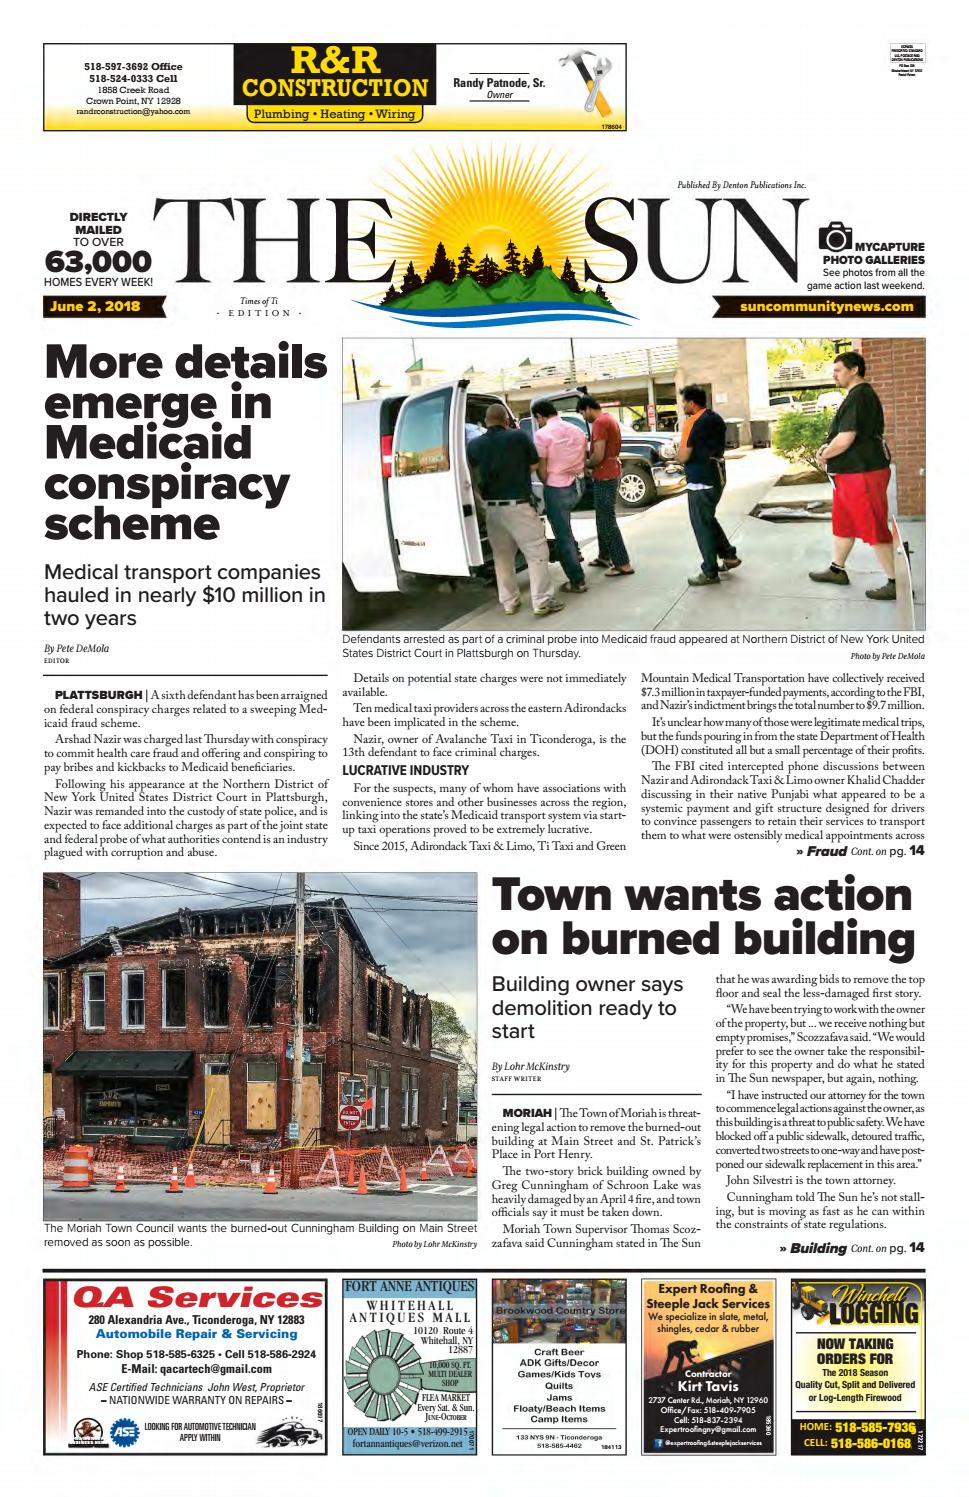 Tt a 0099 0602 by Sun Community News and Printing issuu